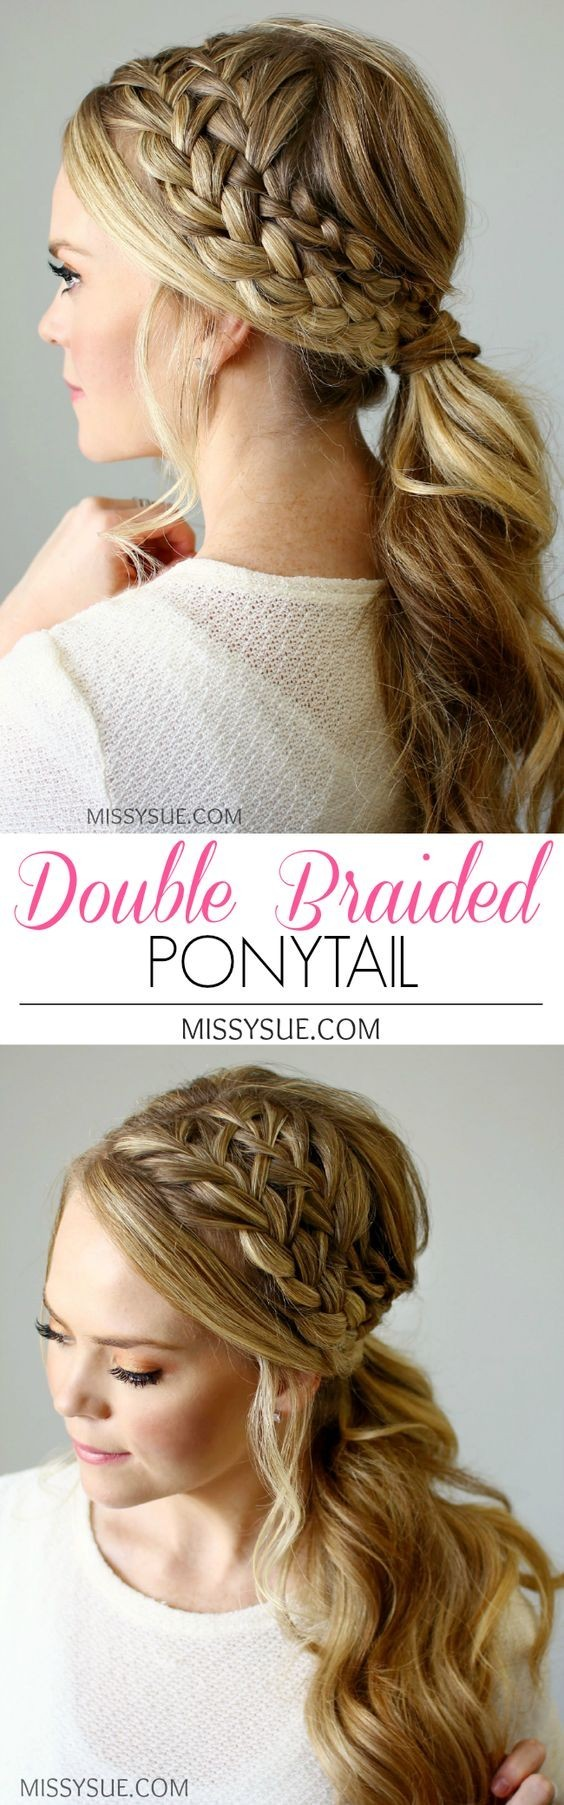 18 Cute Braided Ponytail Styles